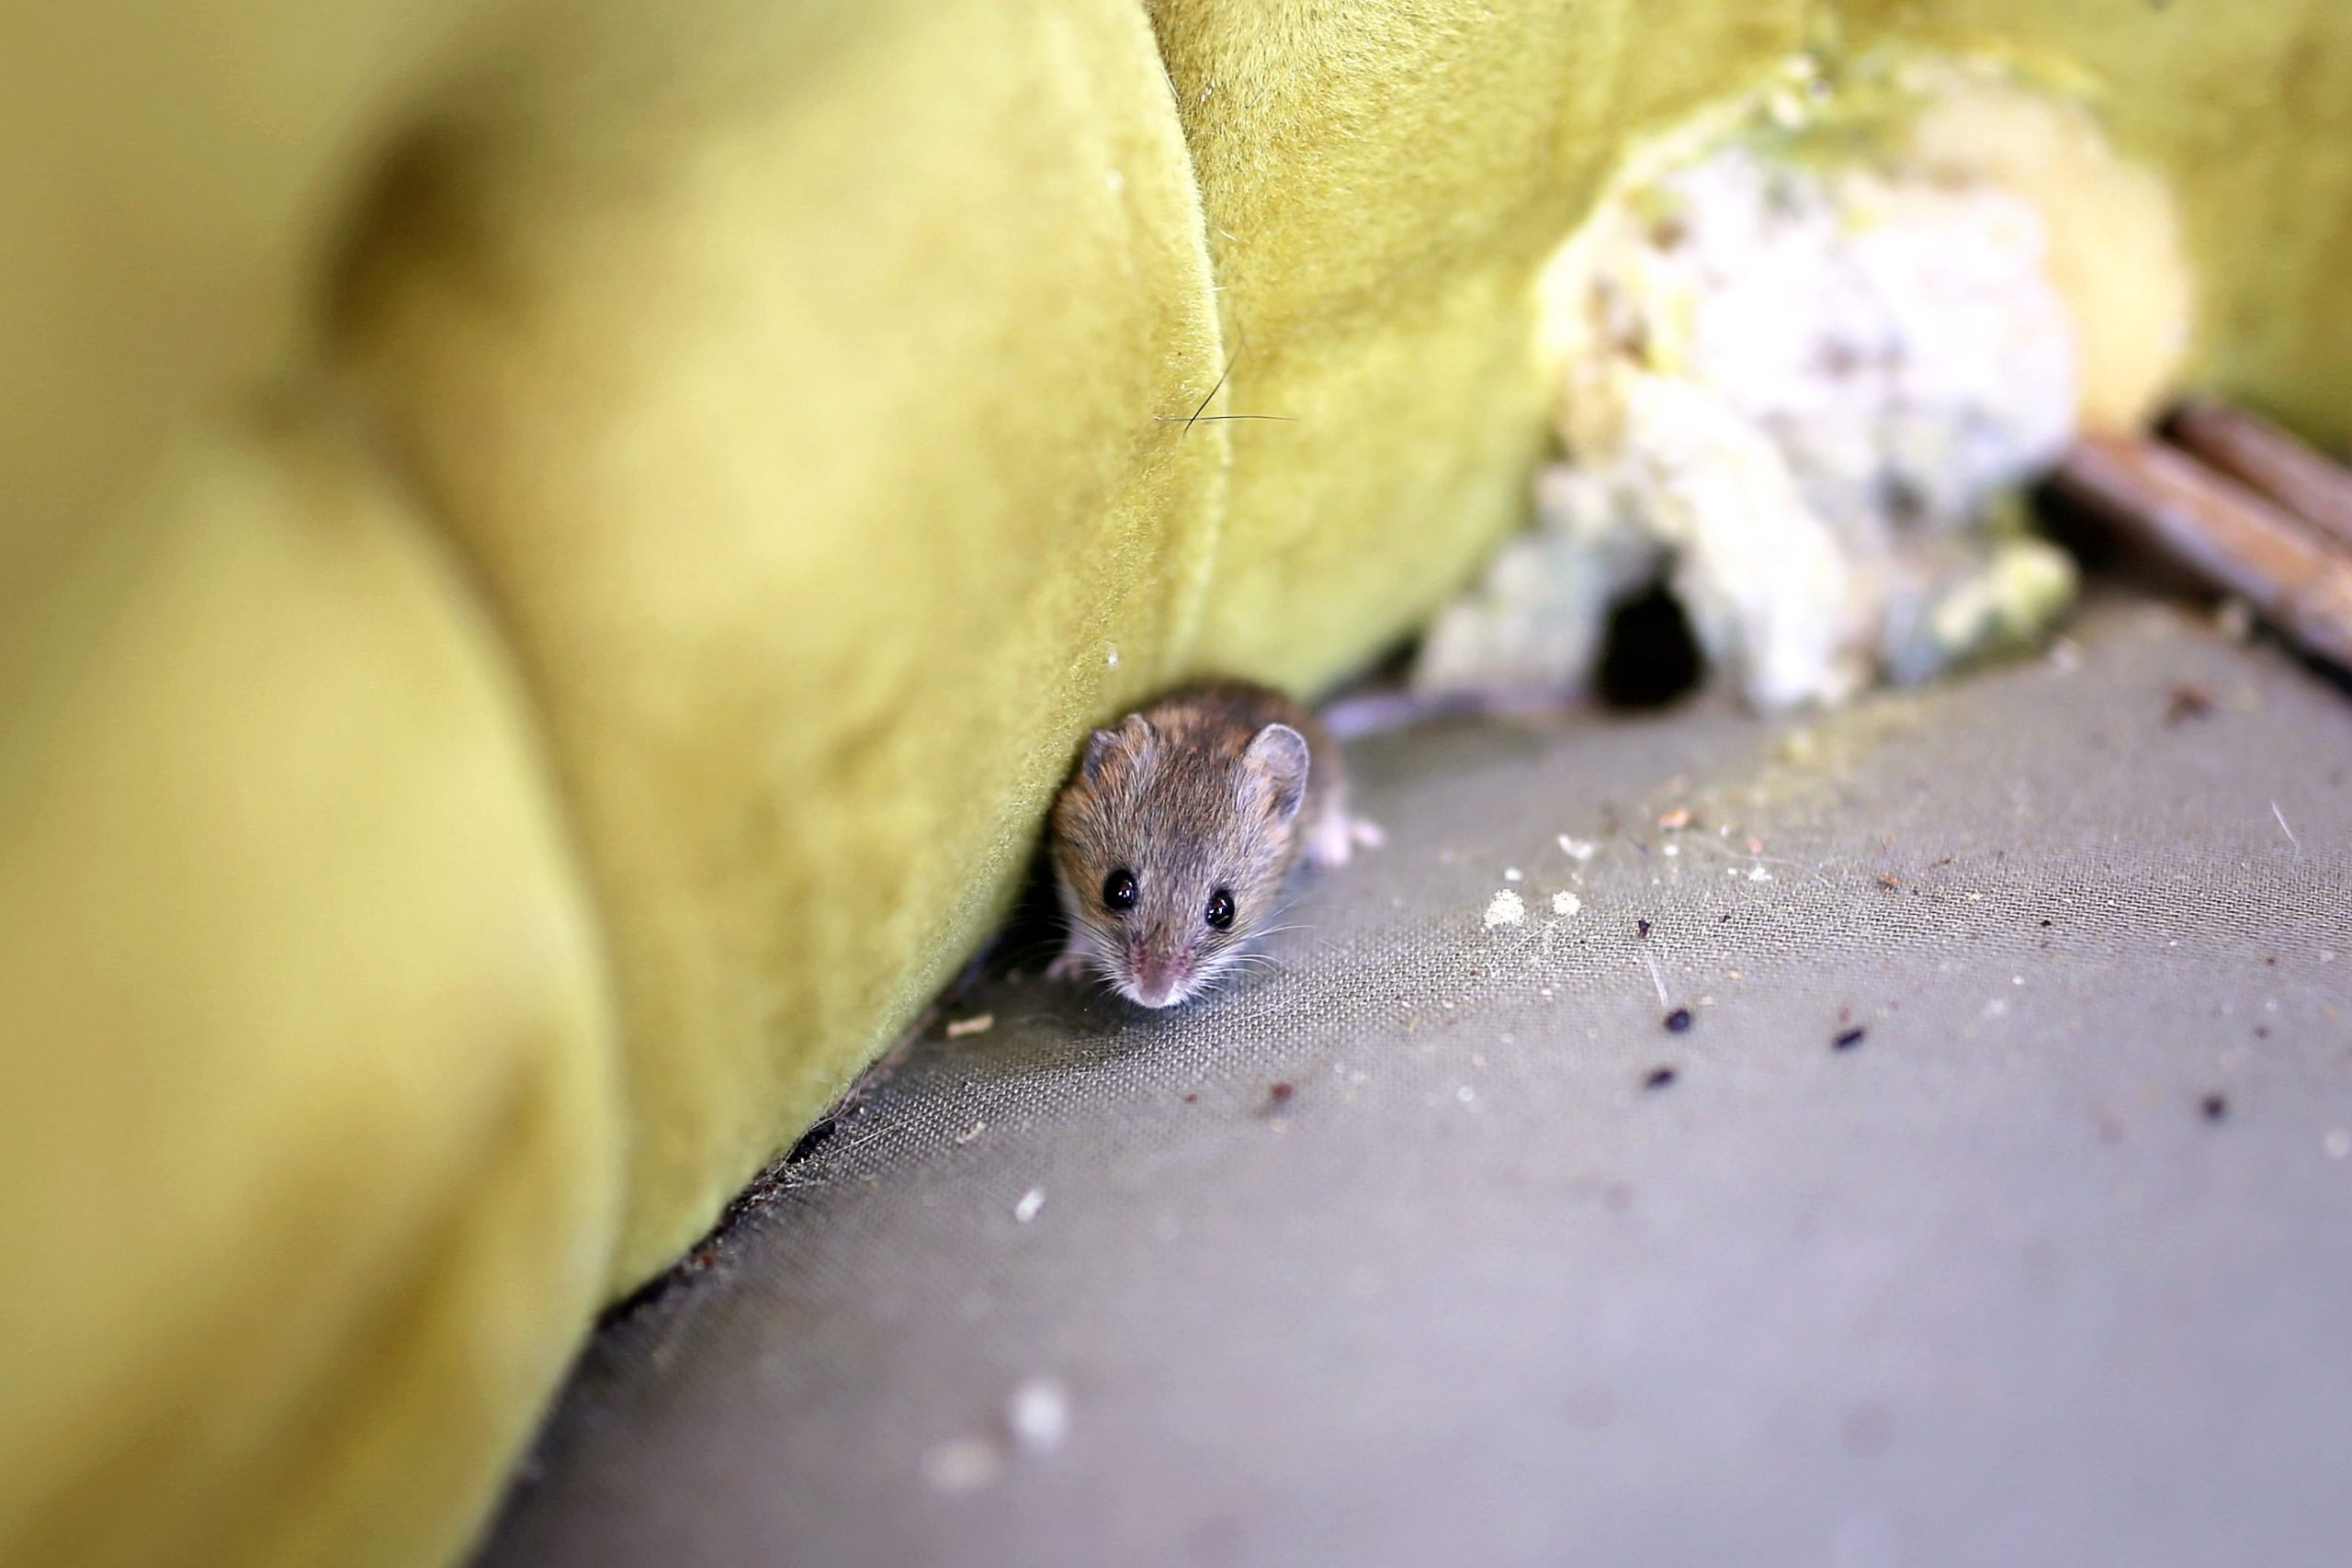 How to Clean Mouse Infested Furniture